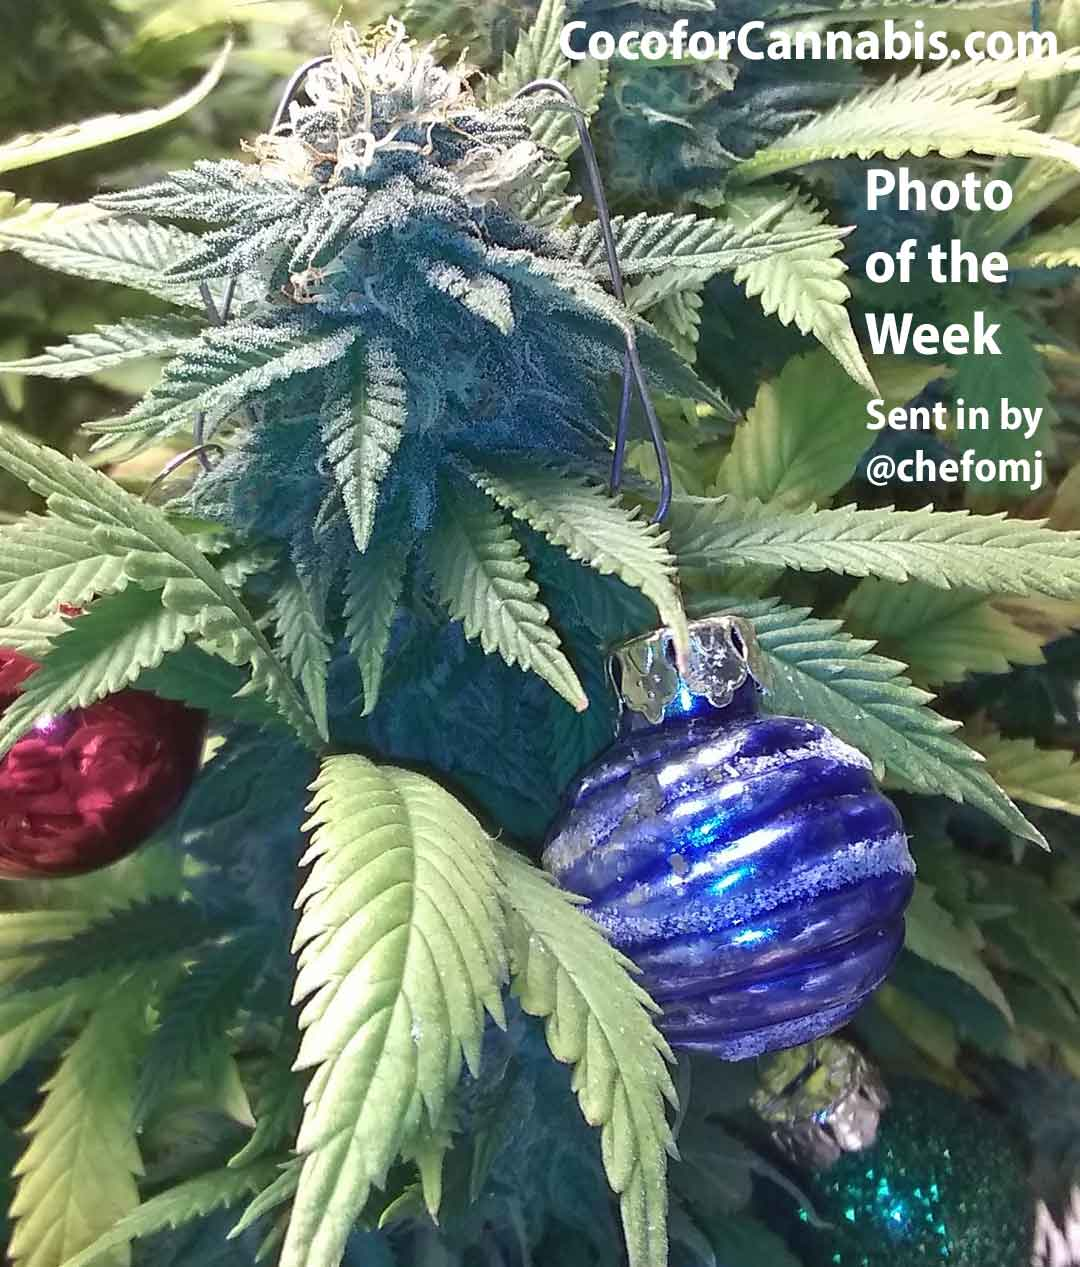 Coco for Cannabis Christmas Photo of the Week